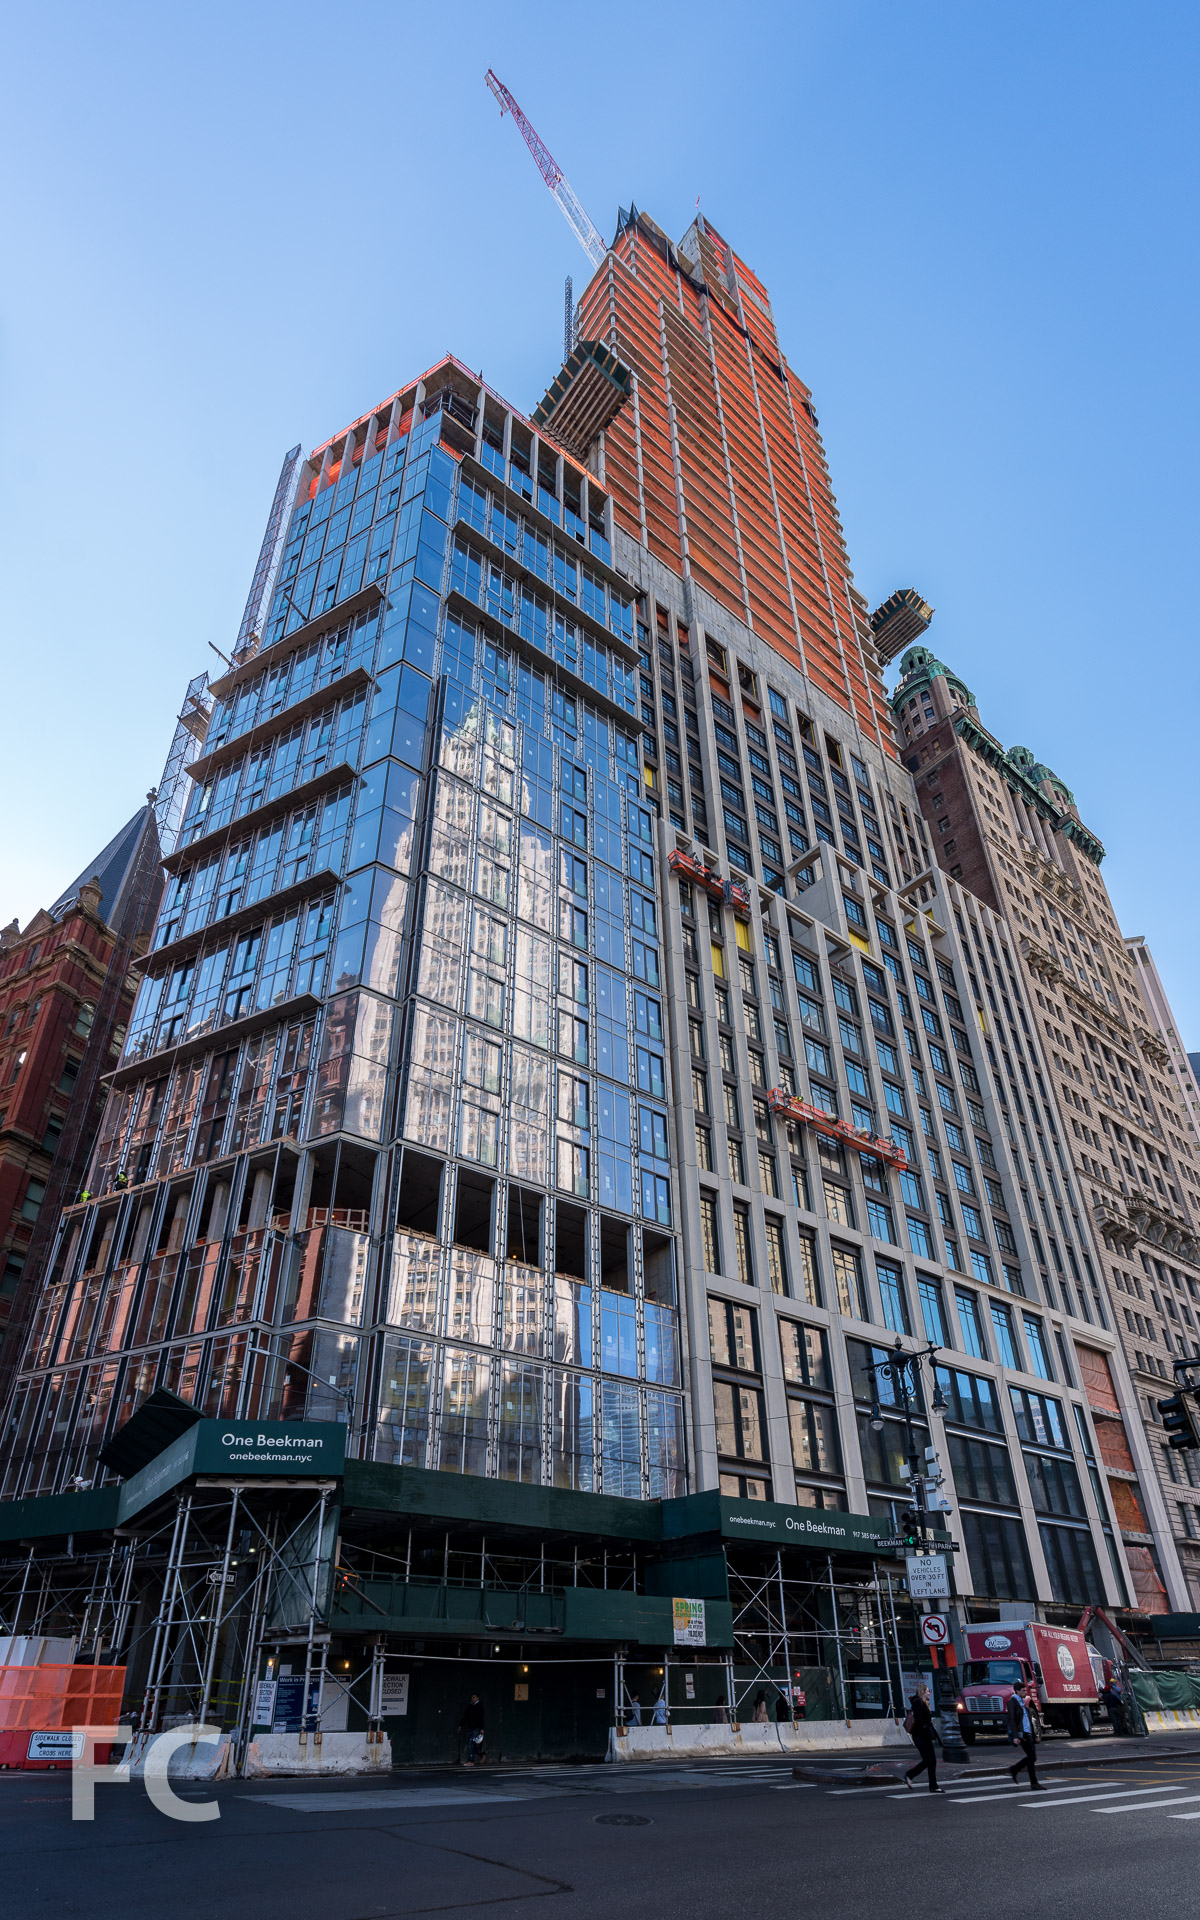 Looking up at the northeast corner of 1 Beekman (left) and 25 Park Row (right).